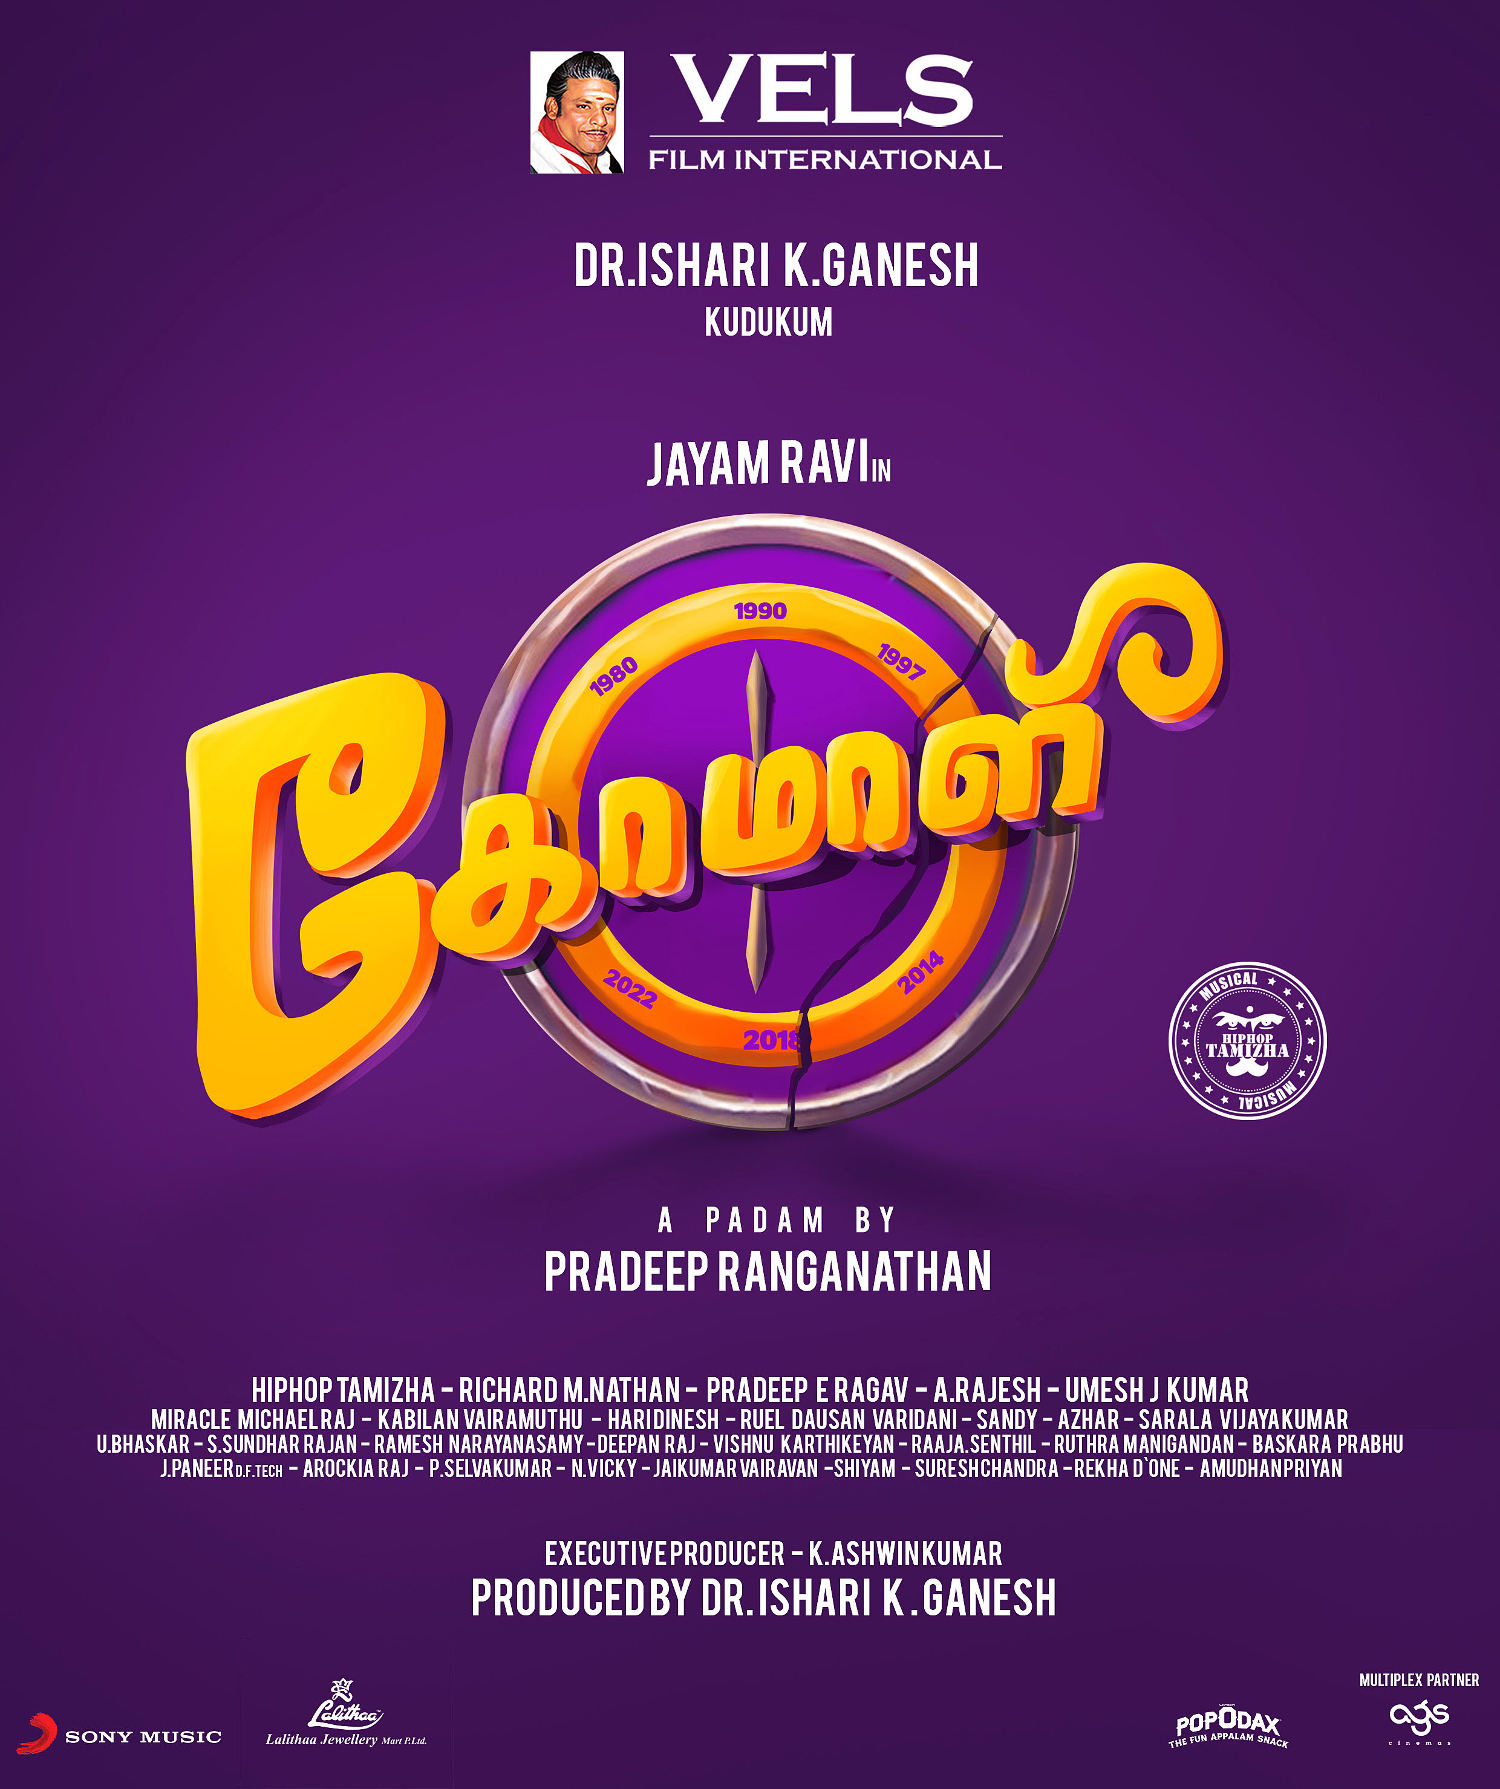 Actor Jayam Ravi gears up to amuse with family entertainer 'Comali' Movie